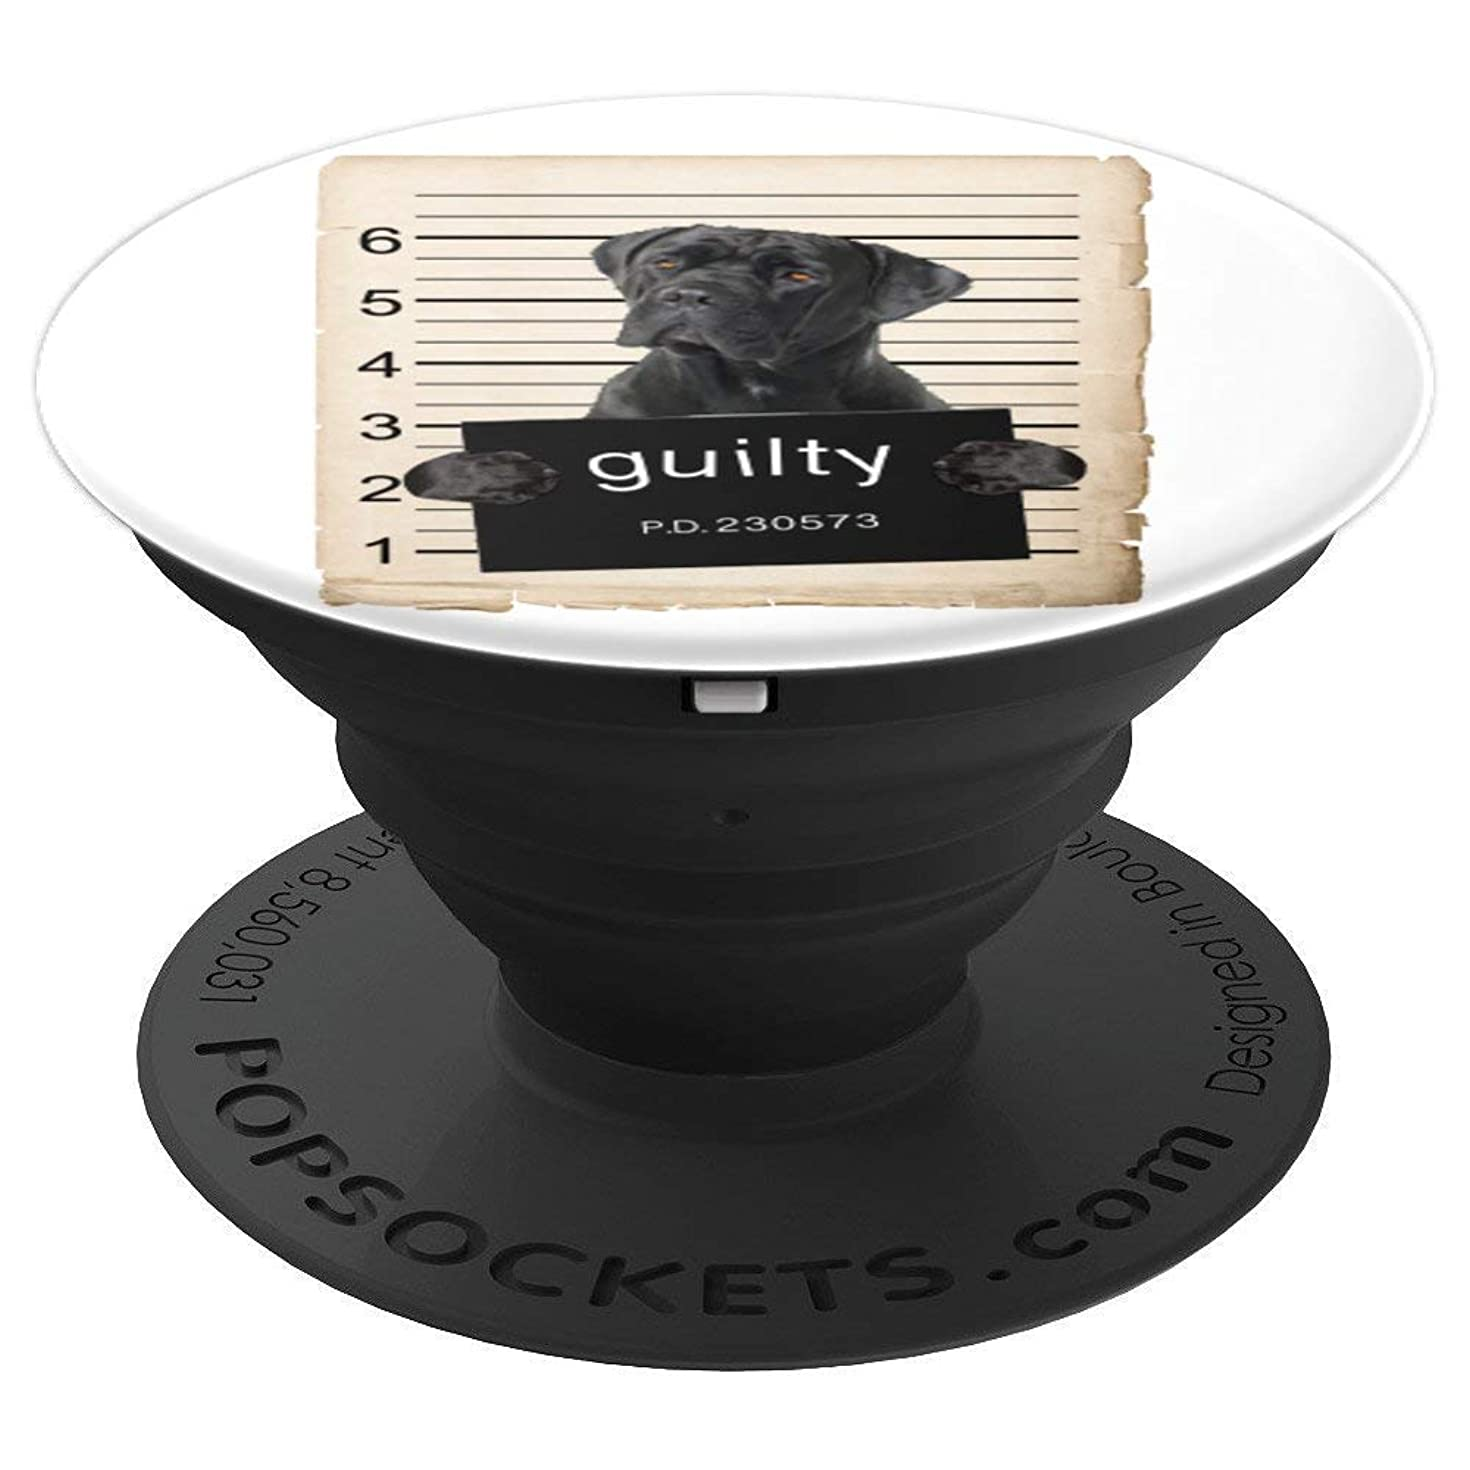 Cane Corso Dog mug shot Bad Dog - PopSockets Grip and Stand for Phones and Tablets